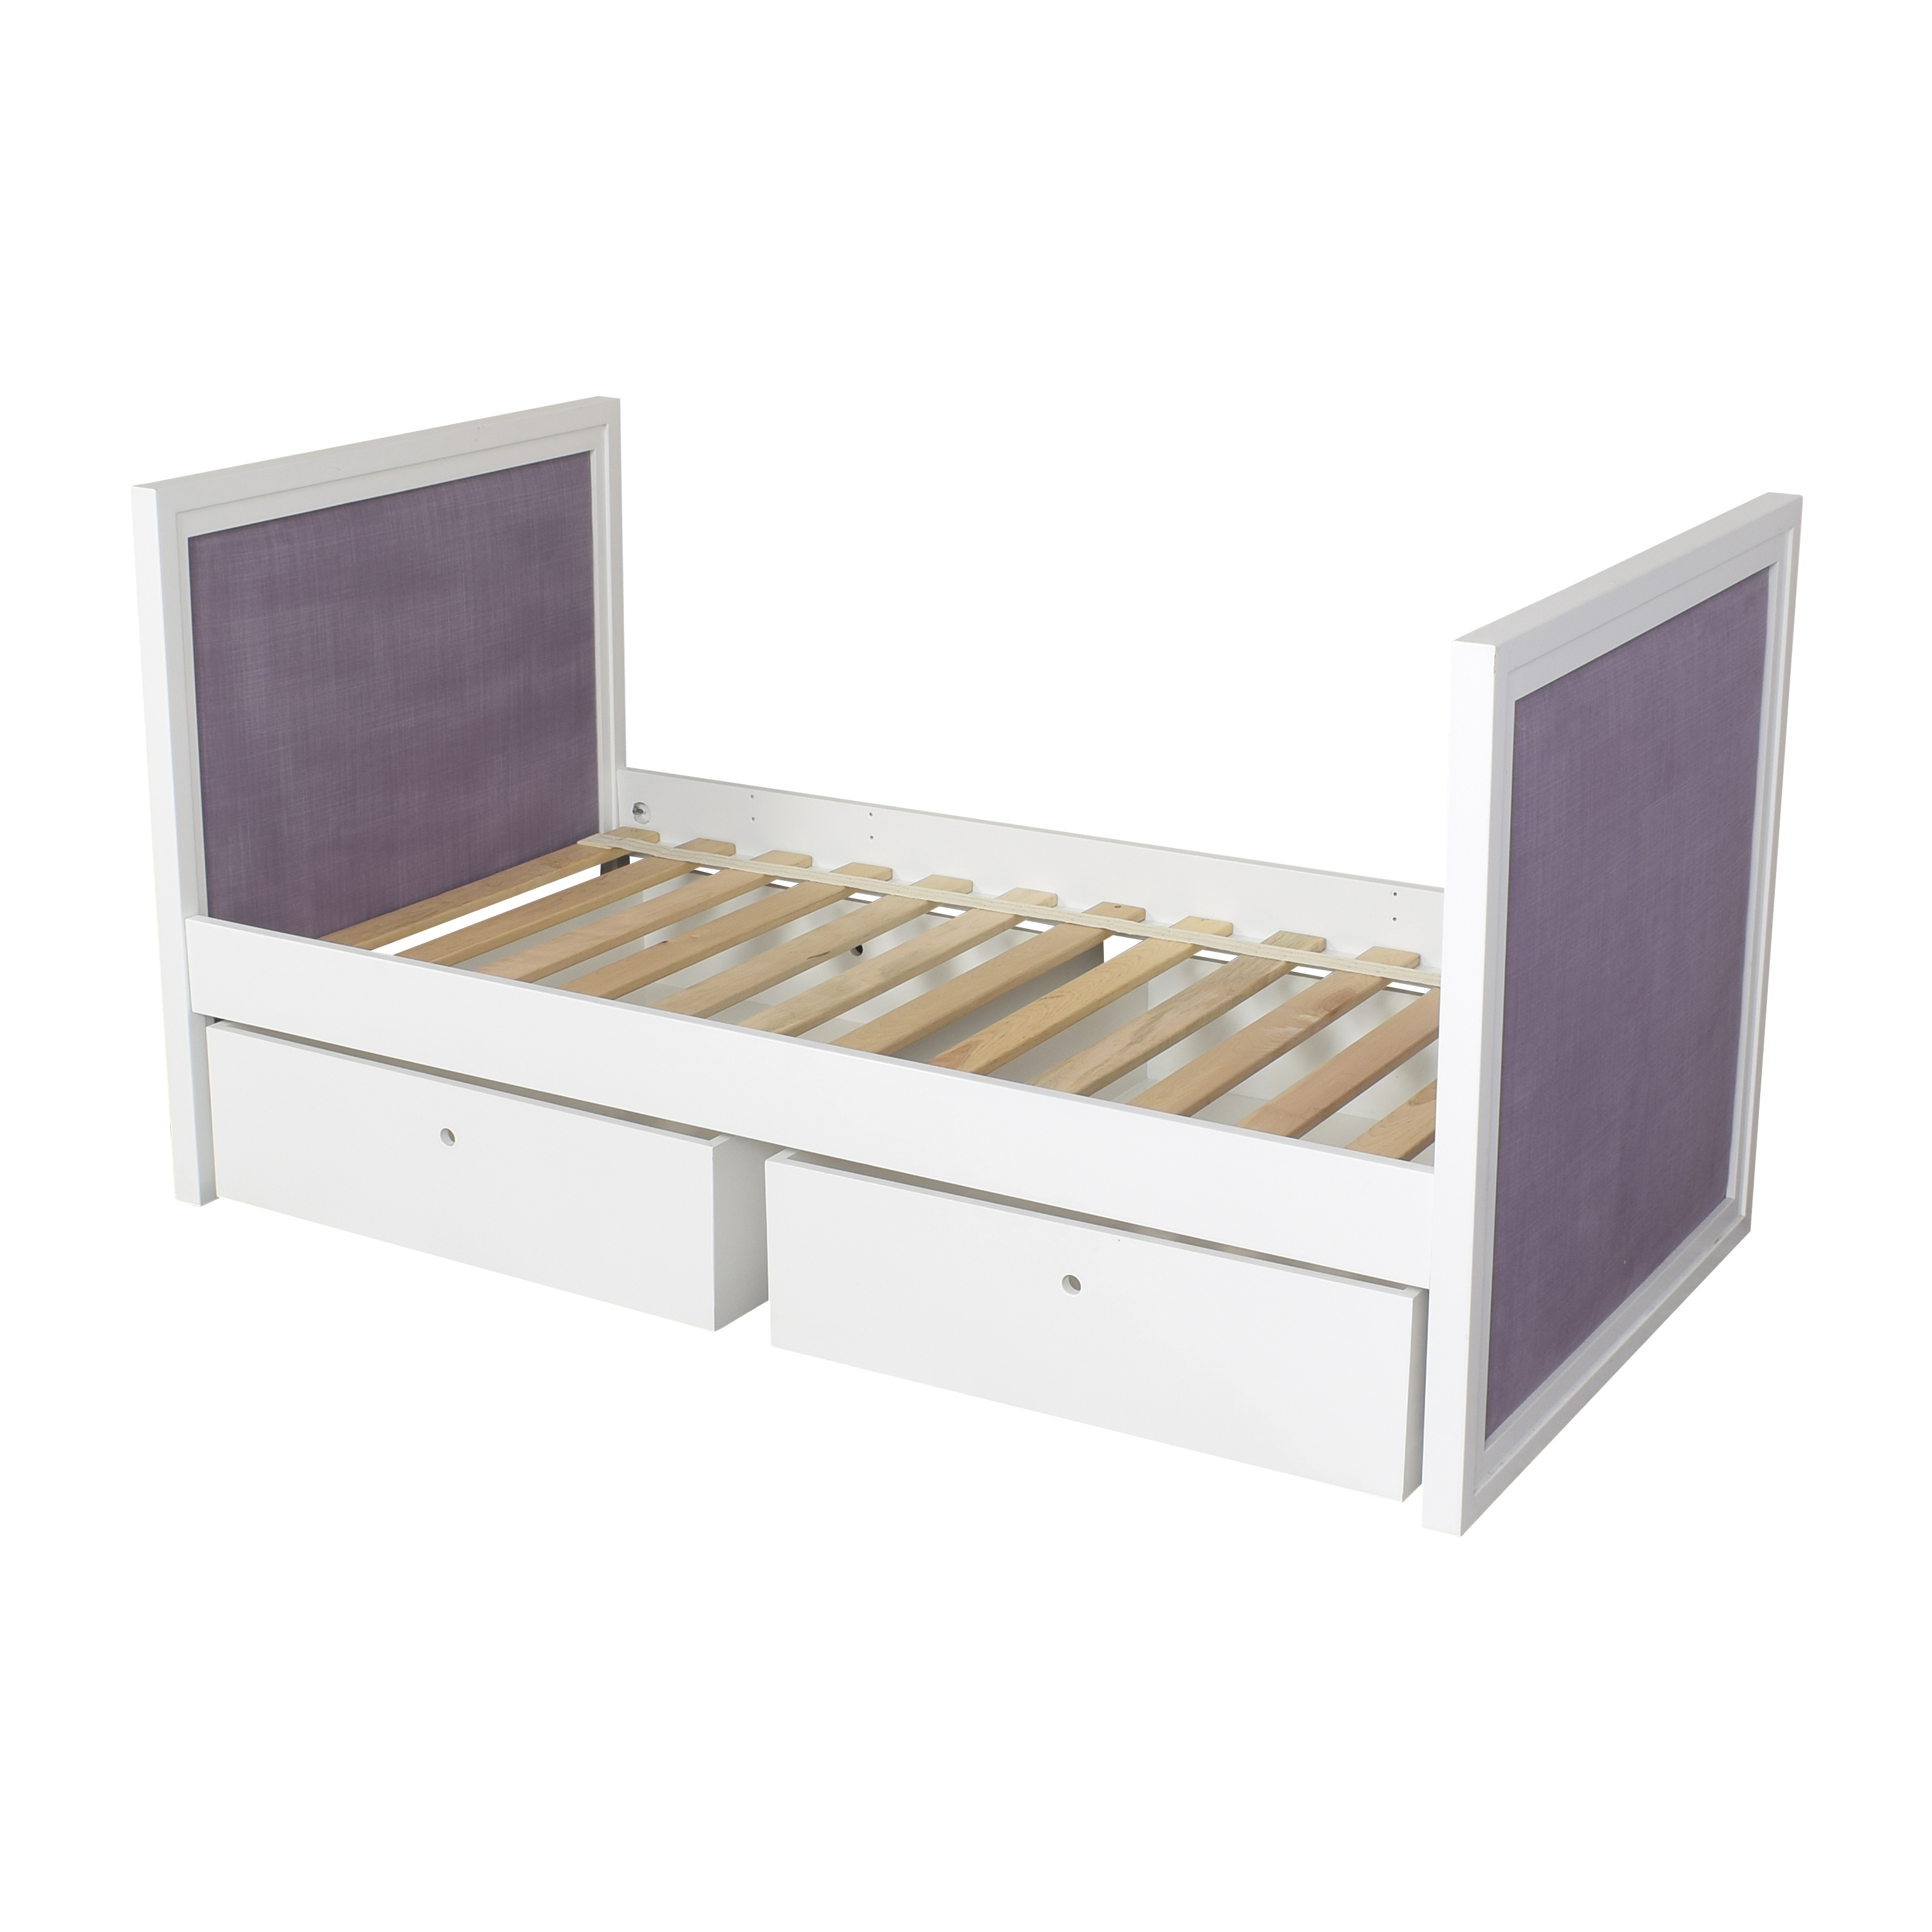 ducduc ducduc Cabana Upholstered Twin Daybed with Storage price